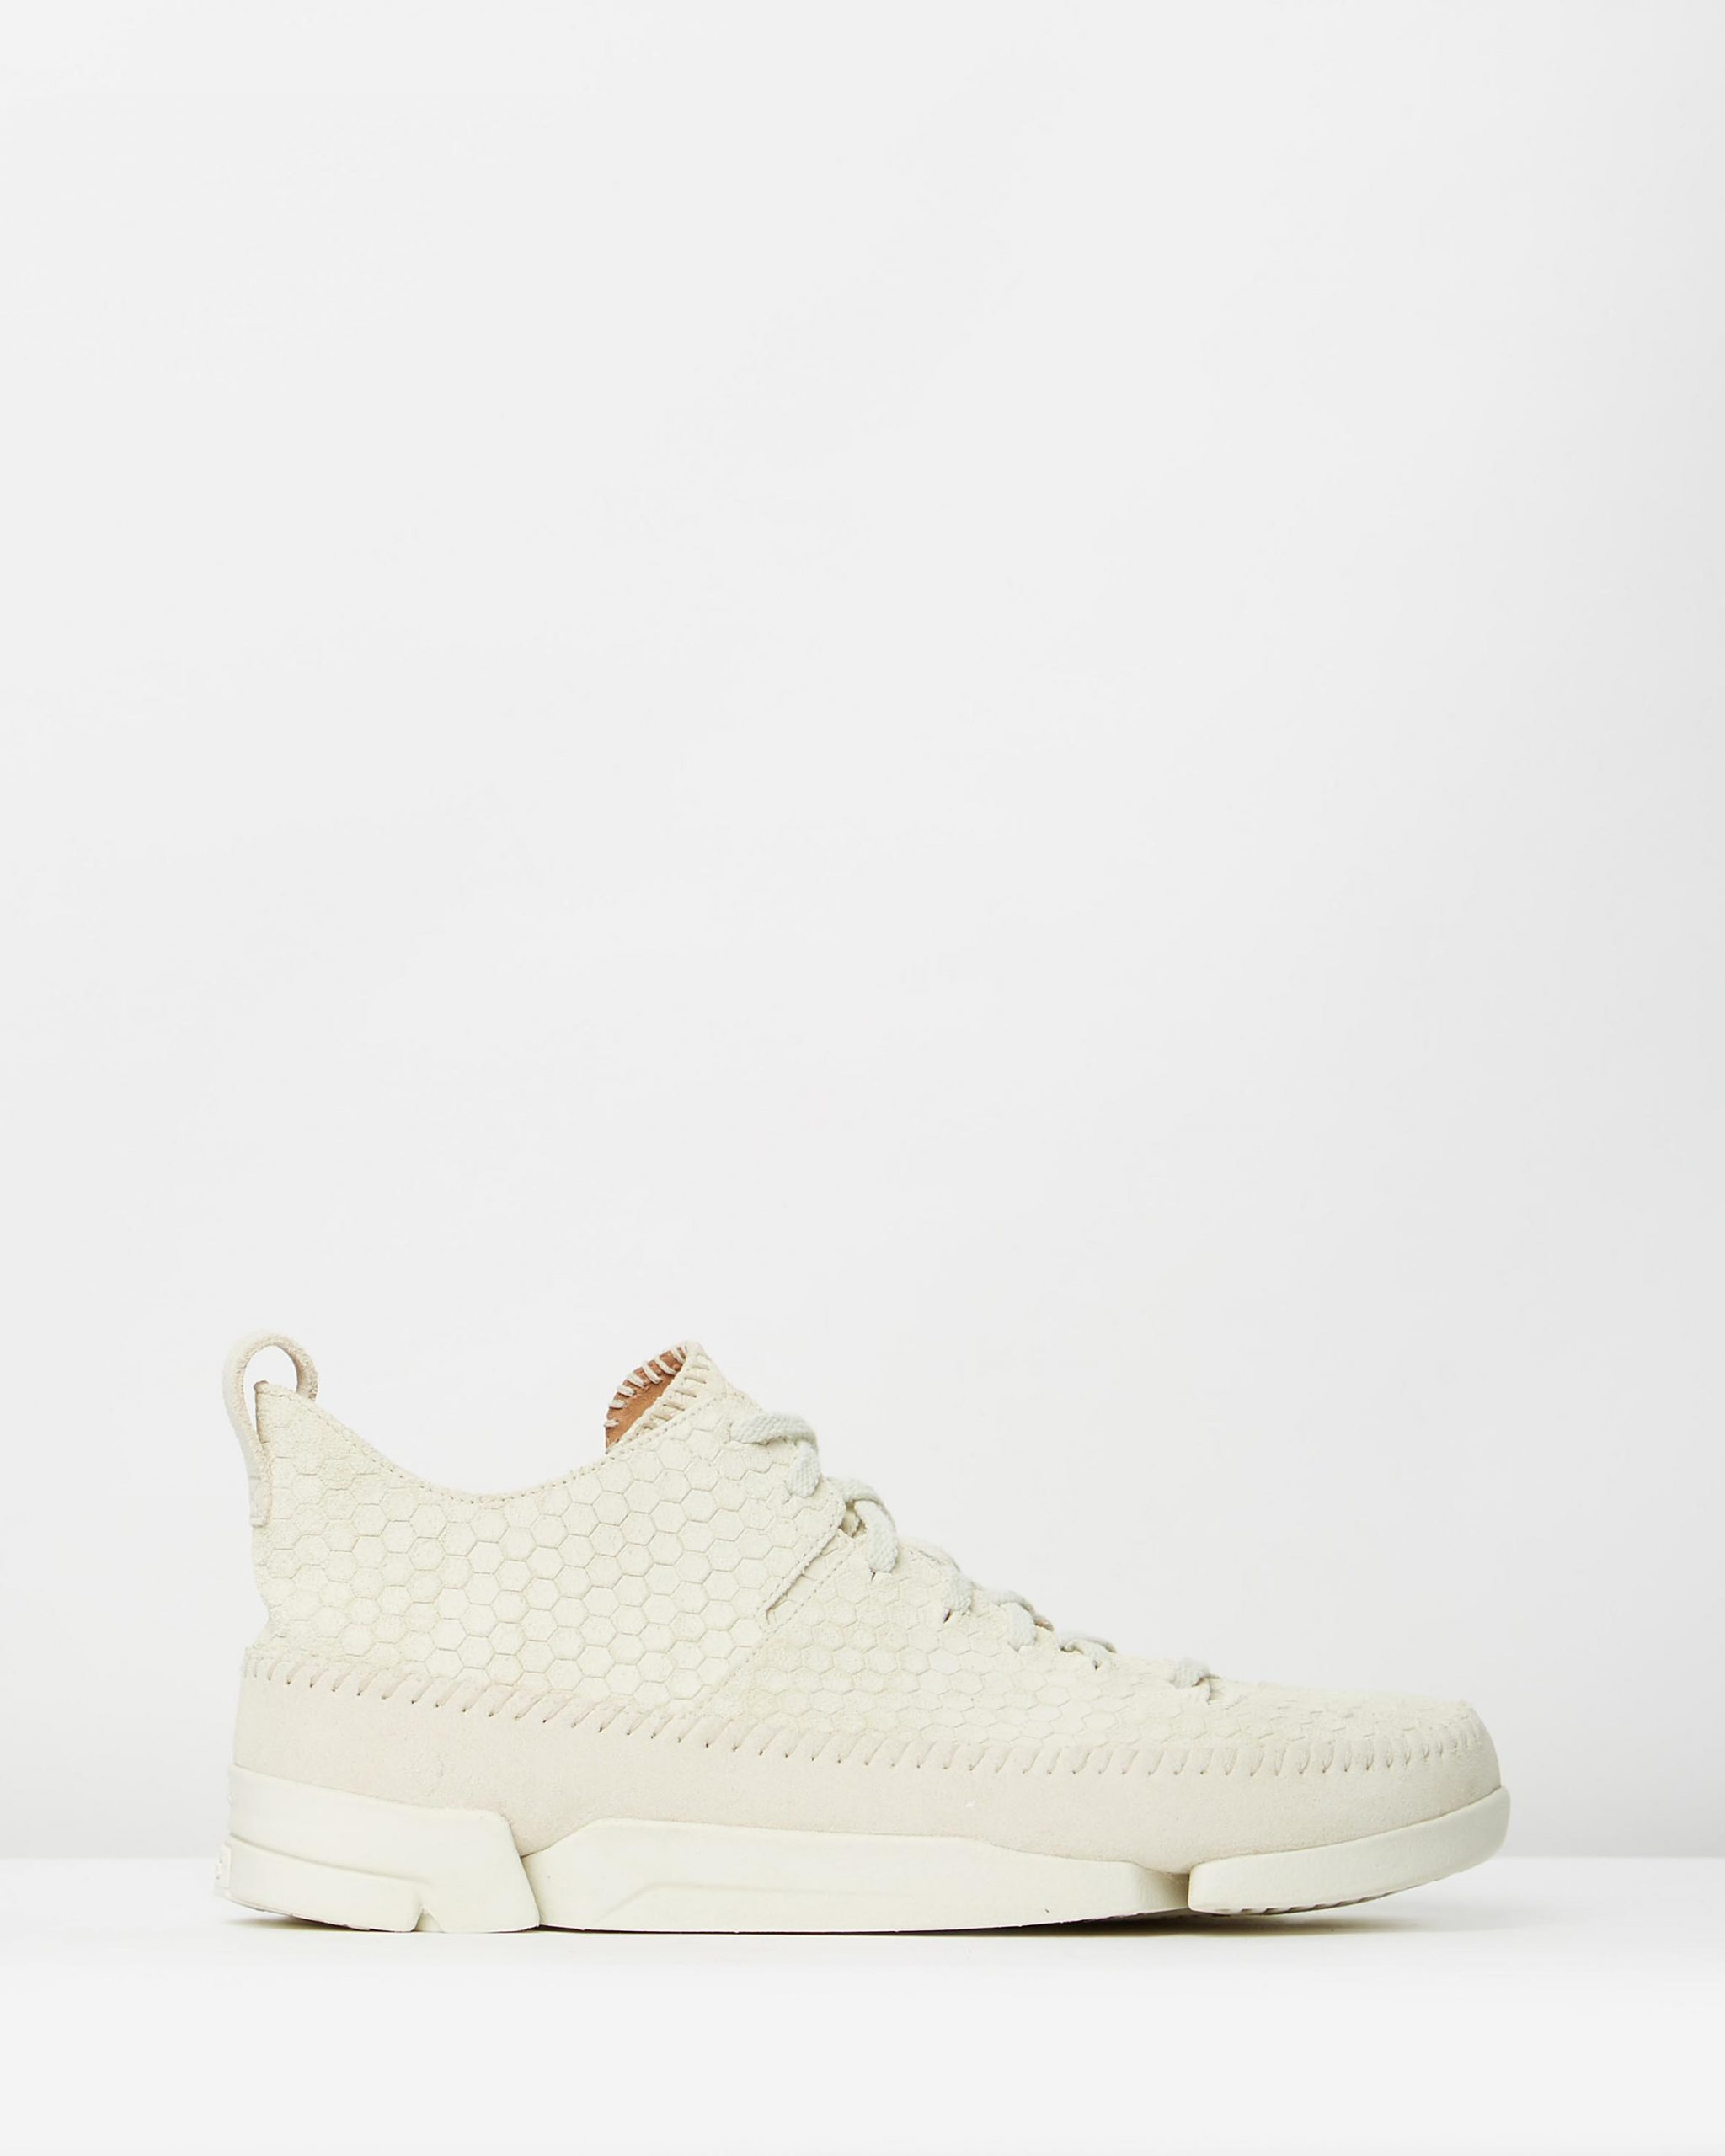 Clarks Originals Trigenic Flex Off-White Interest Suede